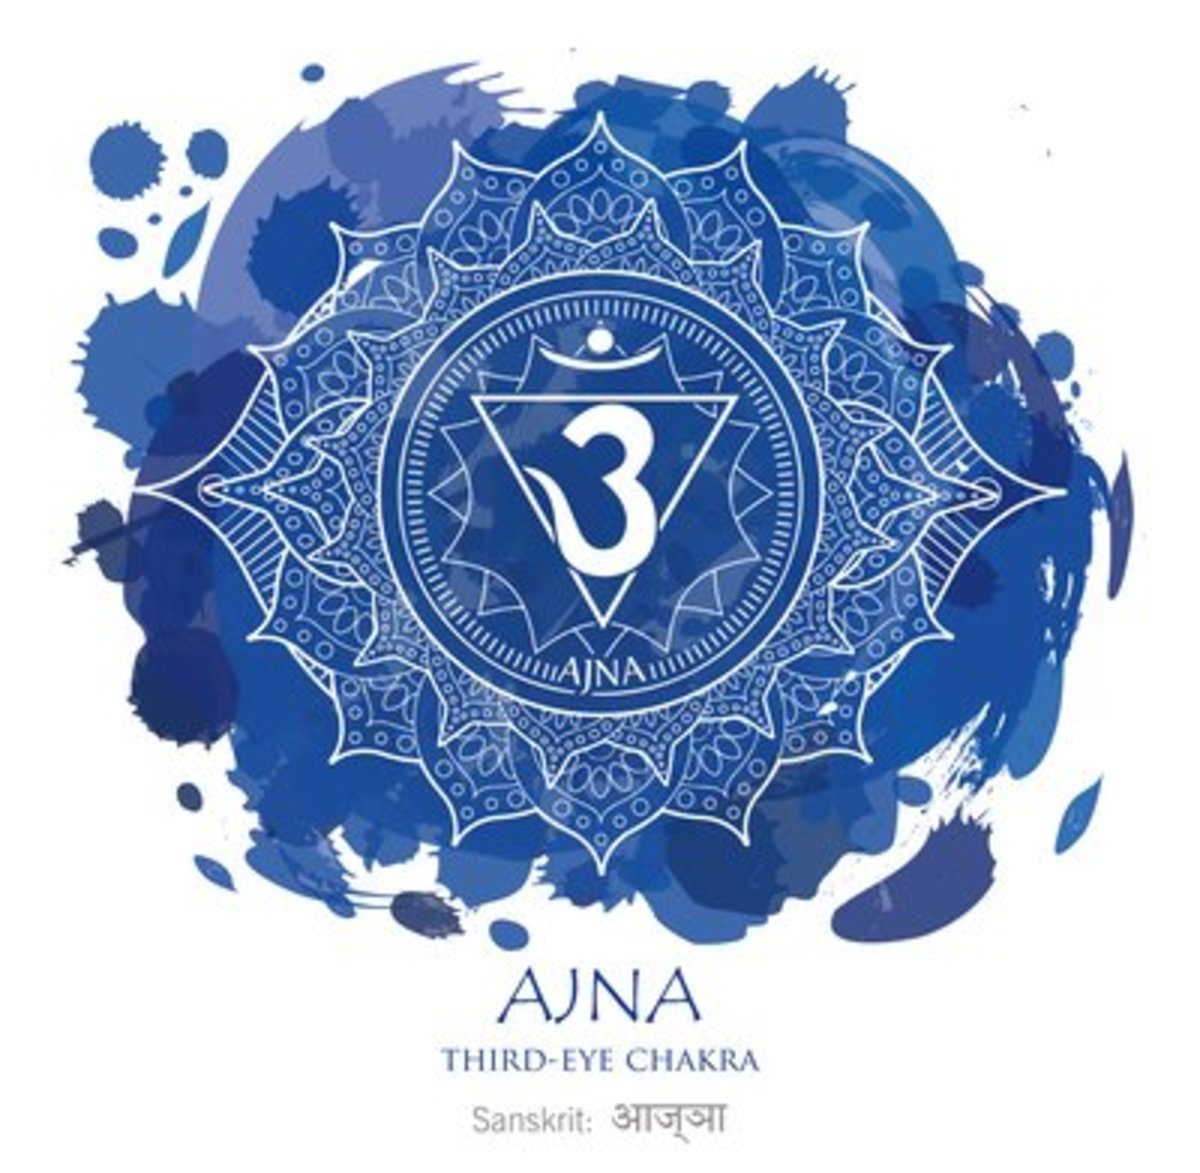 The sixth eye or third eye chakra is associated with the color indigo and is located at the brow.